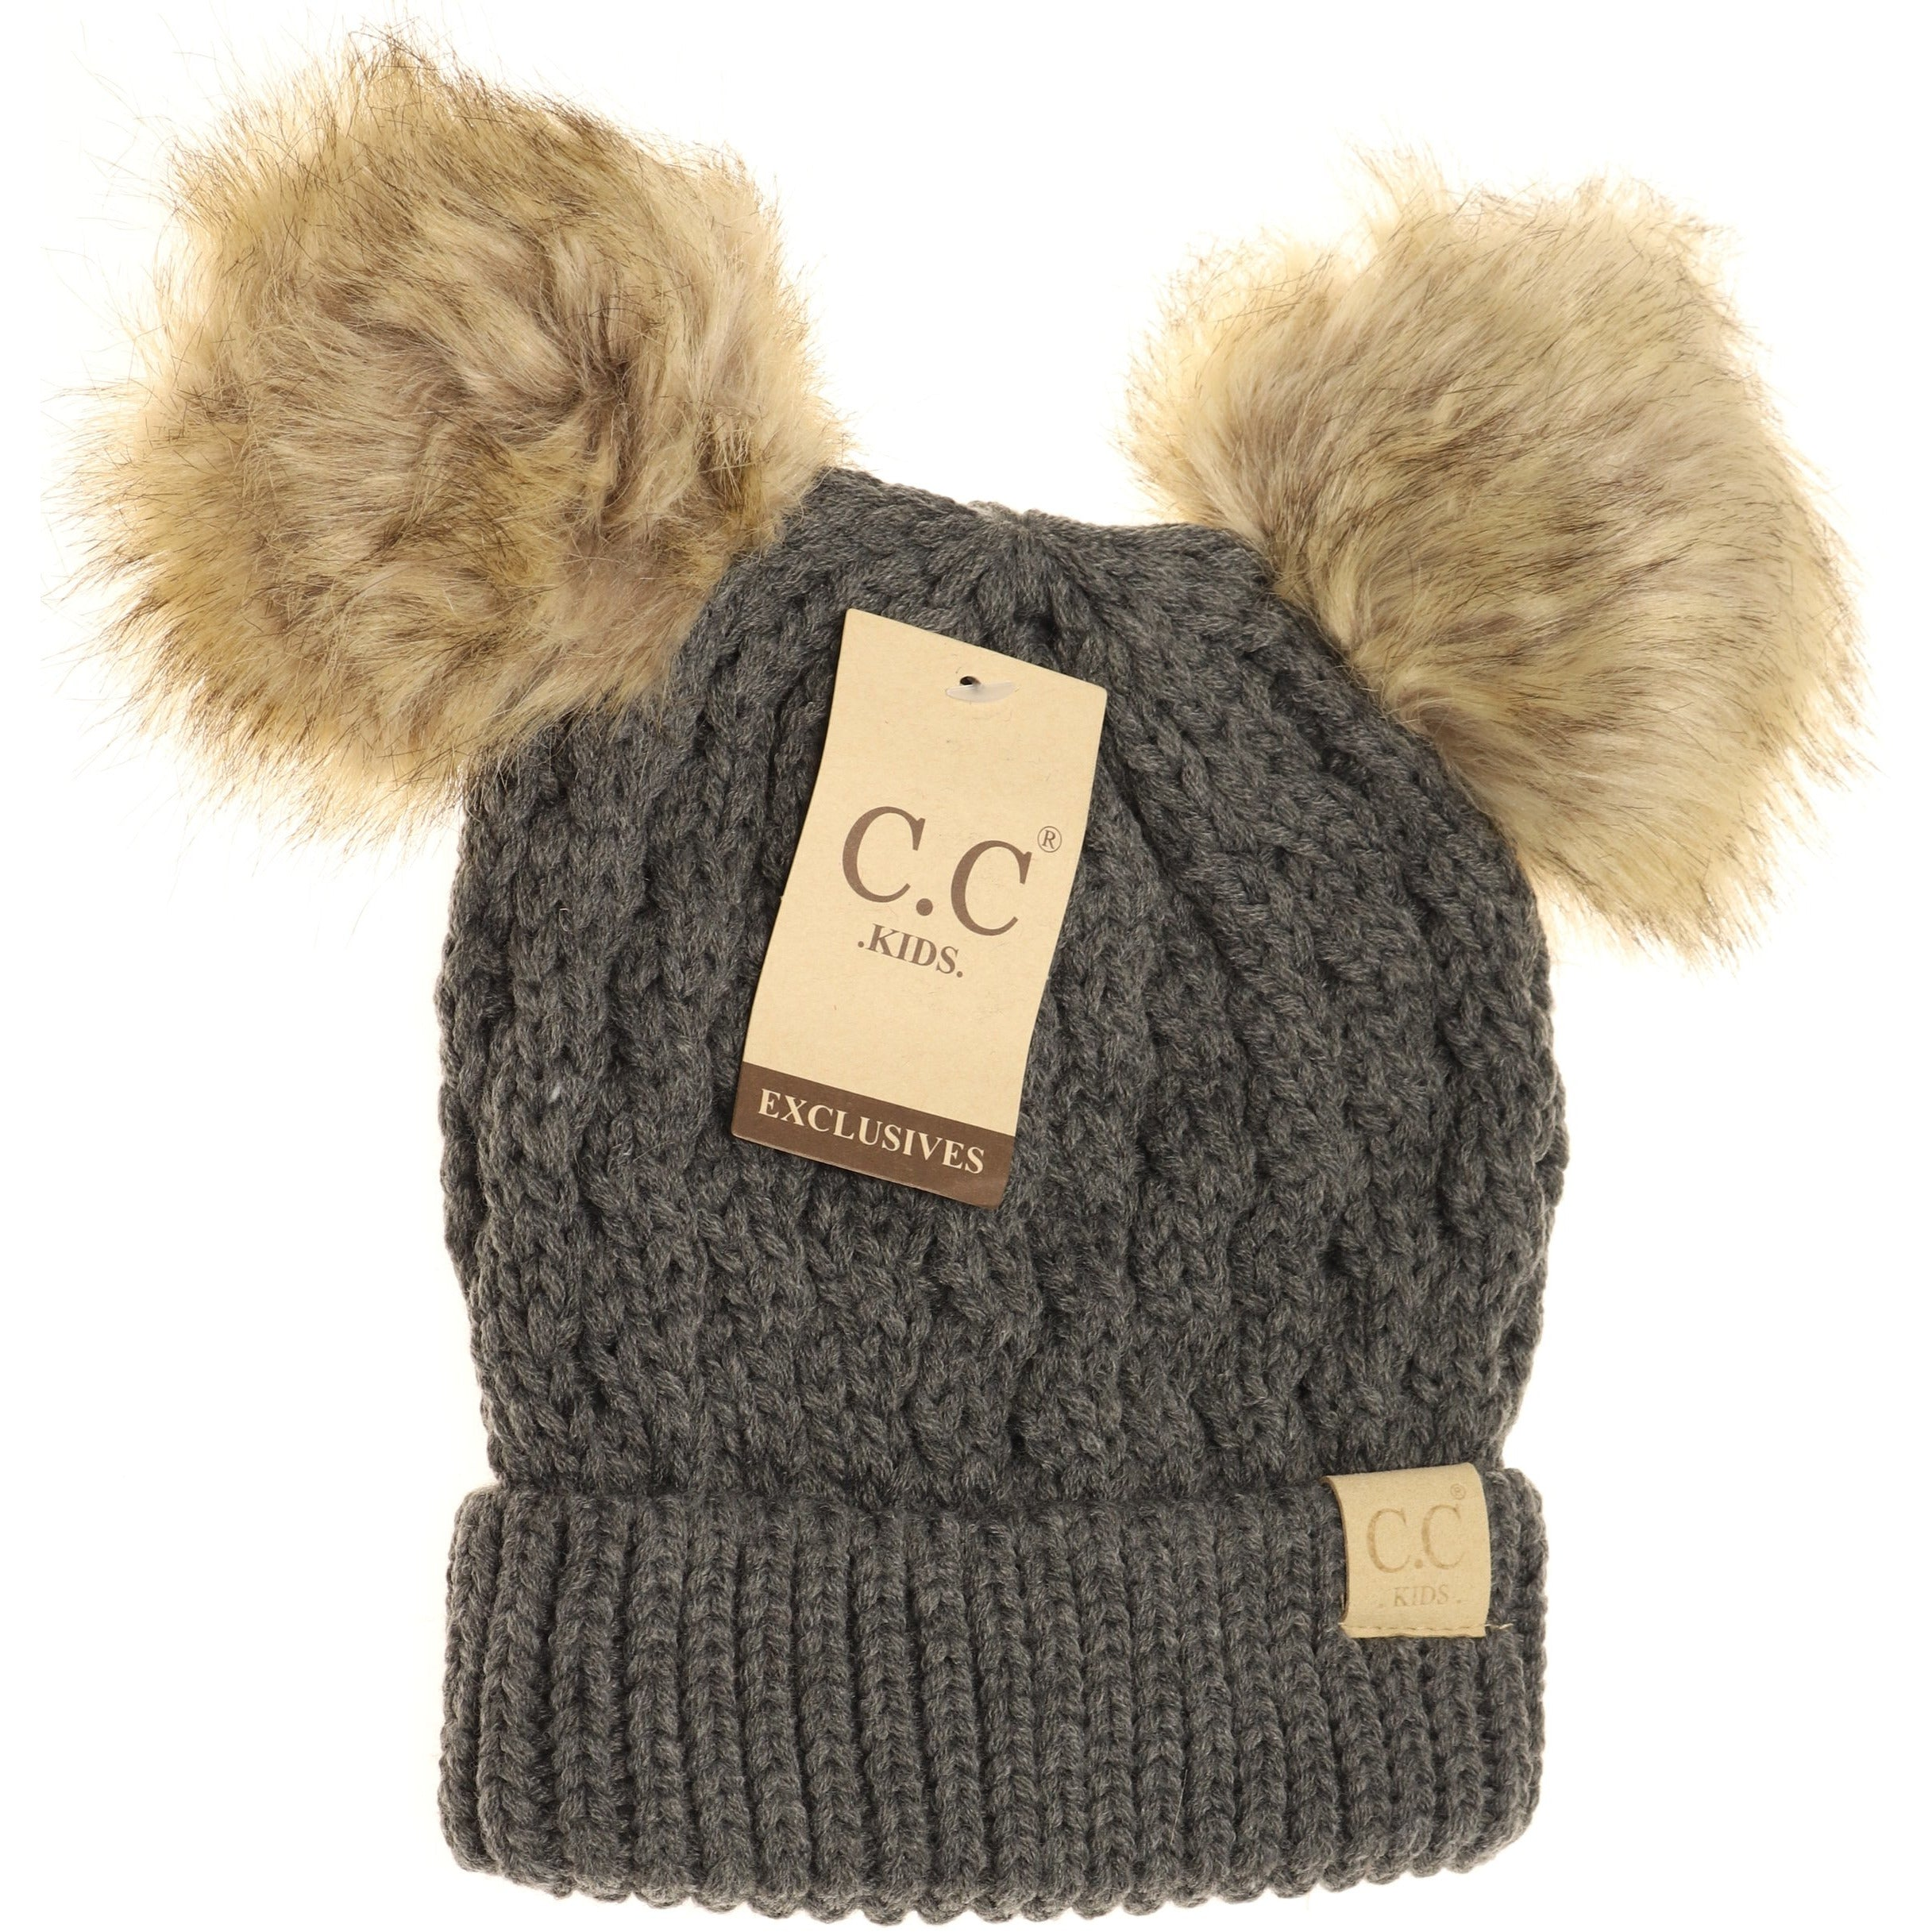 CC Kids Beanies Double Pom Pom Cable Knit Toboggan 3 To Choose From XS//S NWT